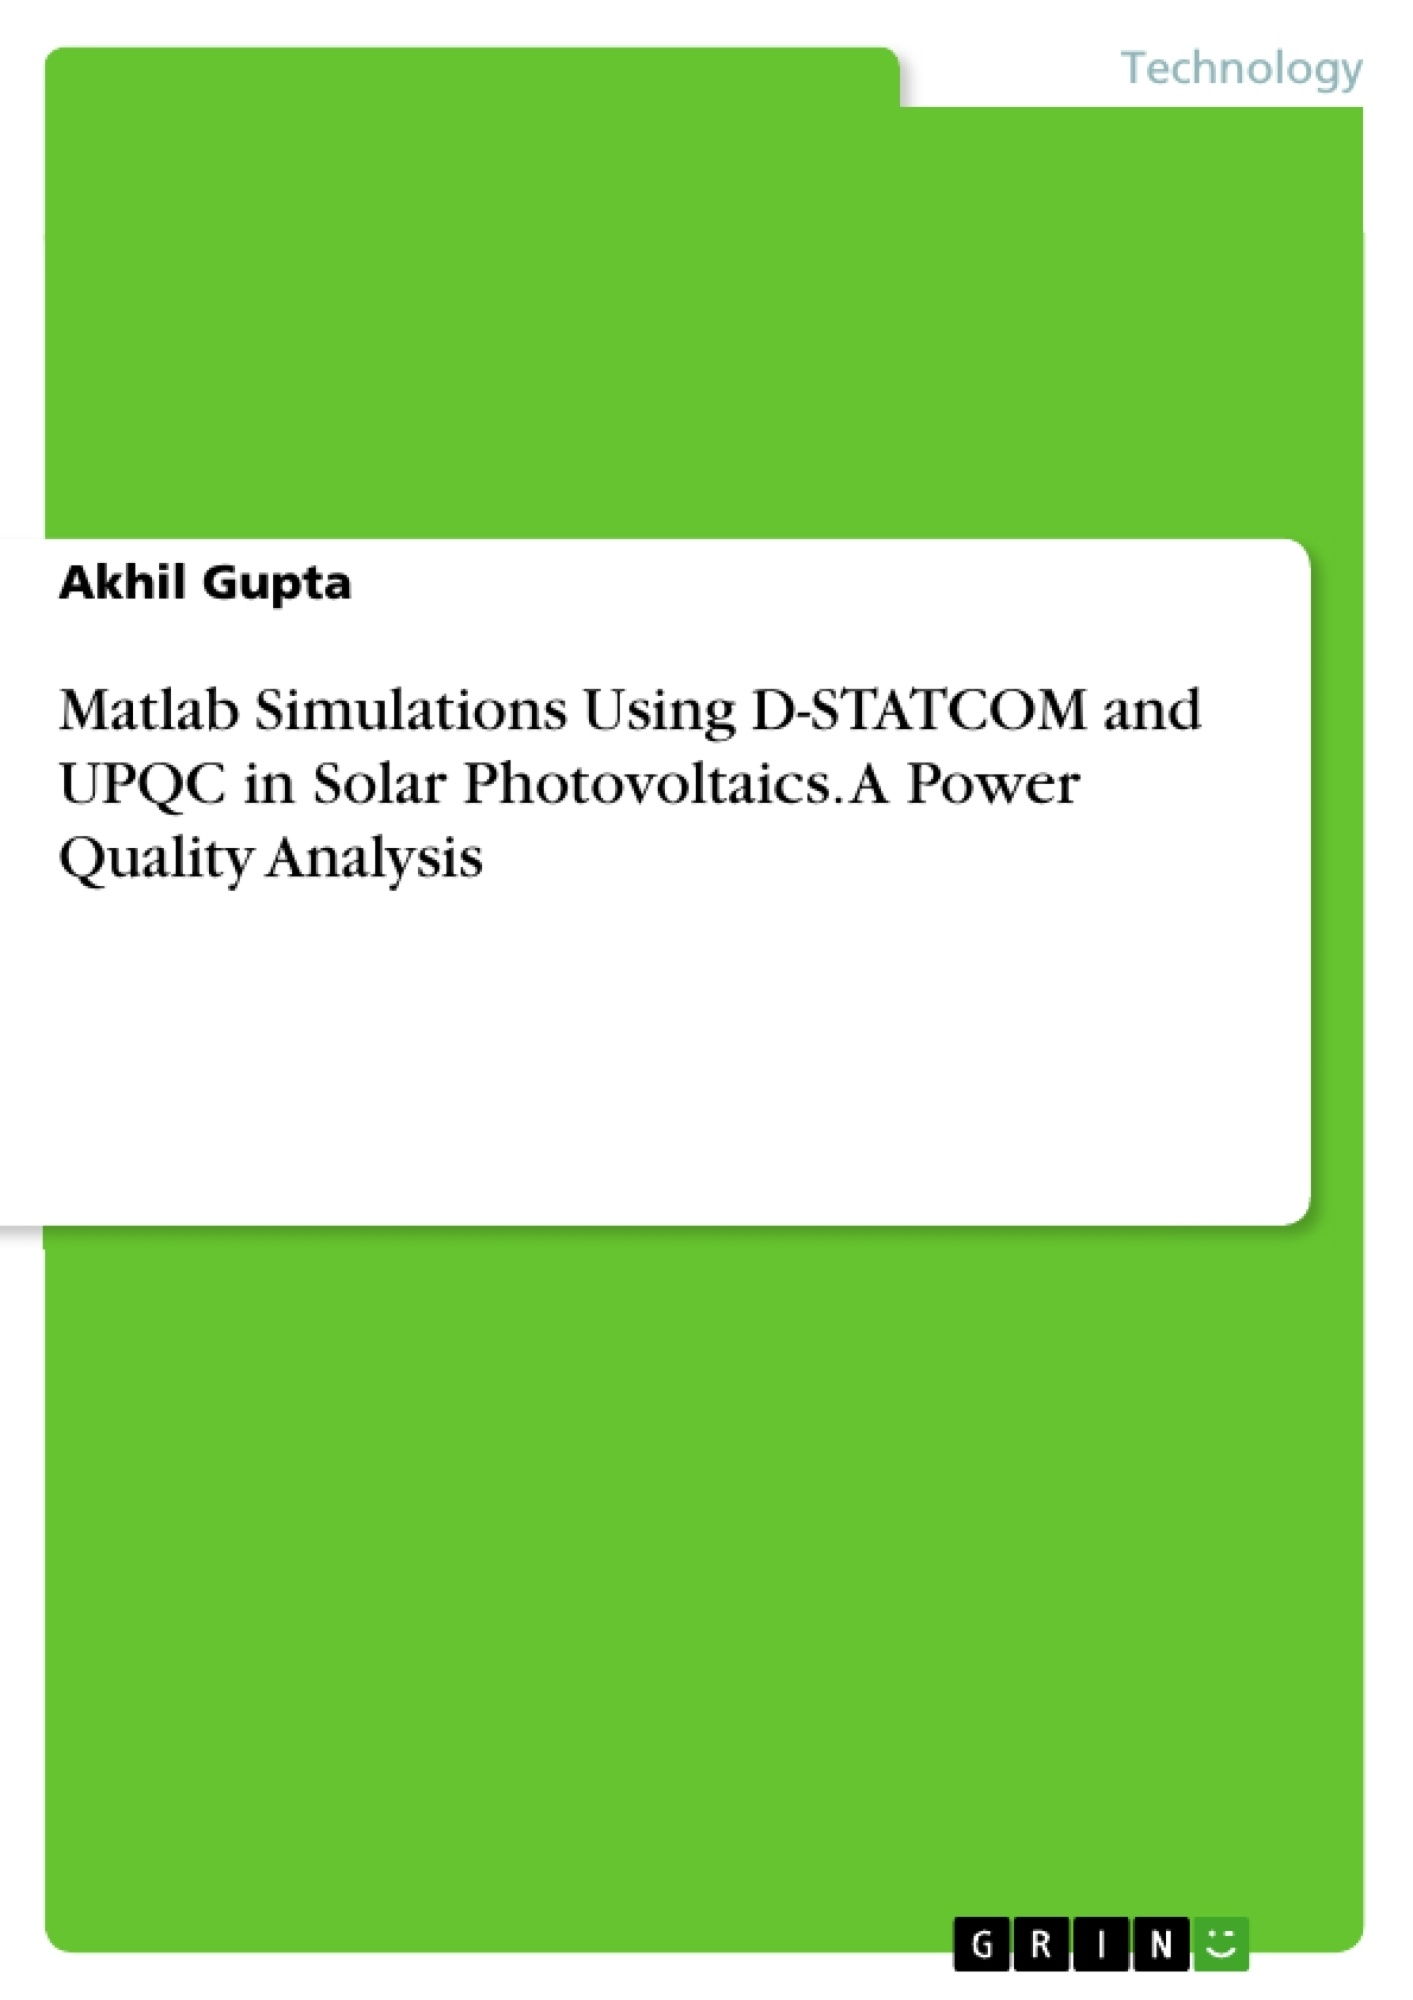 Title: Matlab Simulations Using D-STATCOM and UPQC in Solar Photovoltaics. A Power Quality Analysis